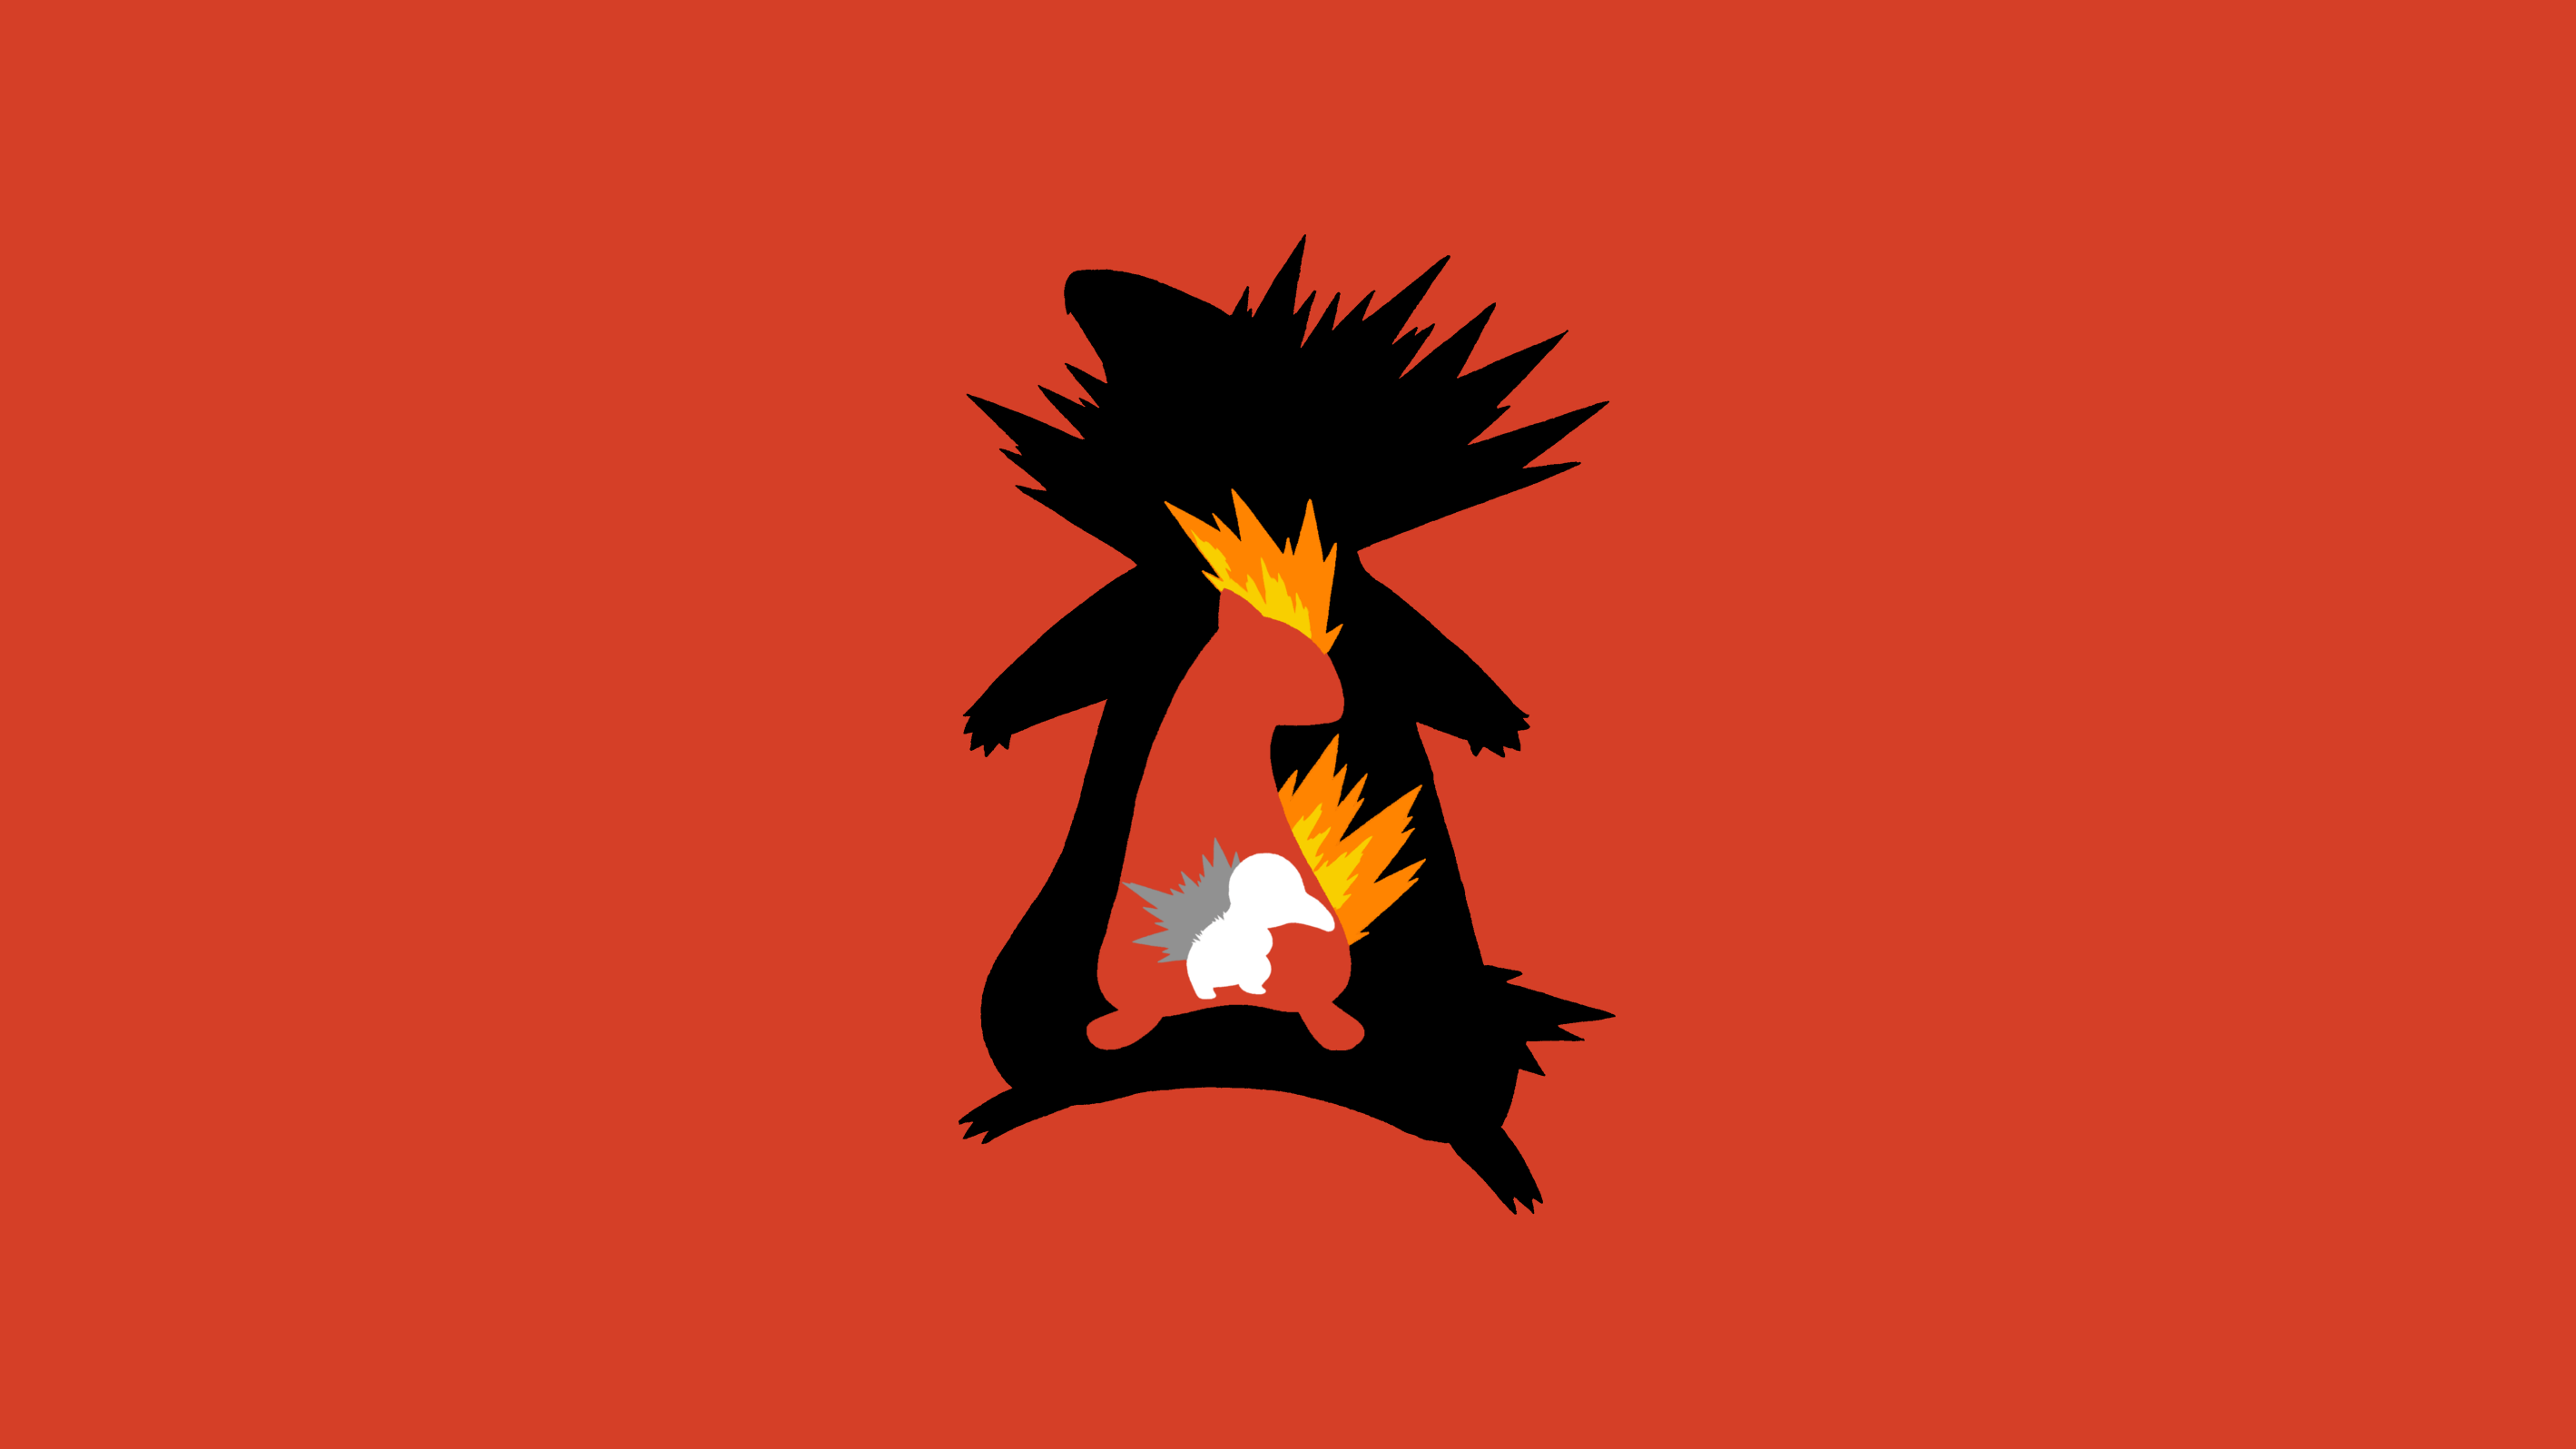 Cyndaquil Wallpapers - Wallpaper Cave Cyndaquil Wallpaper